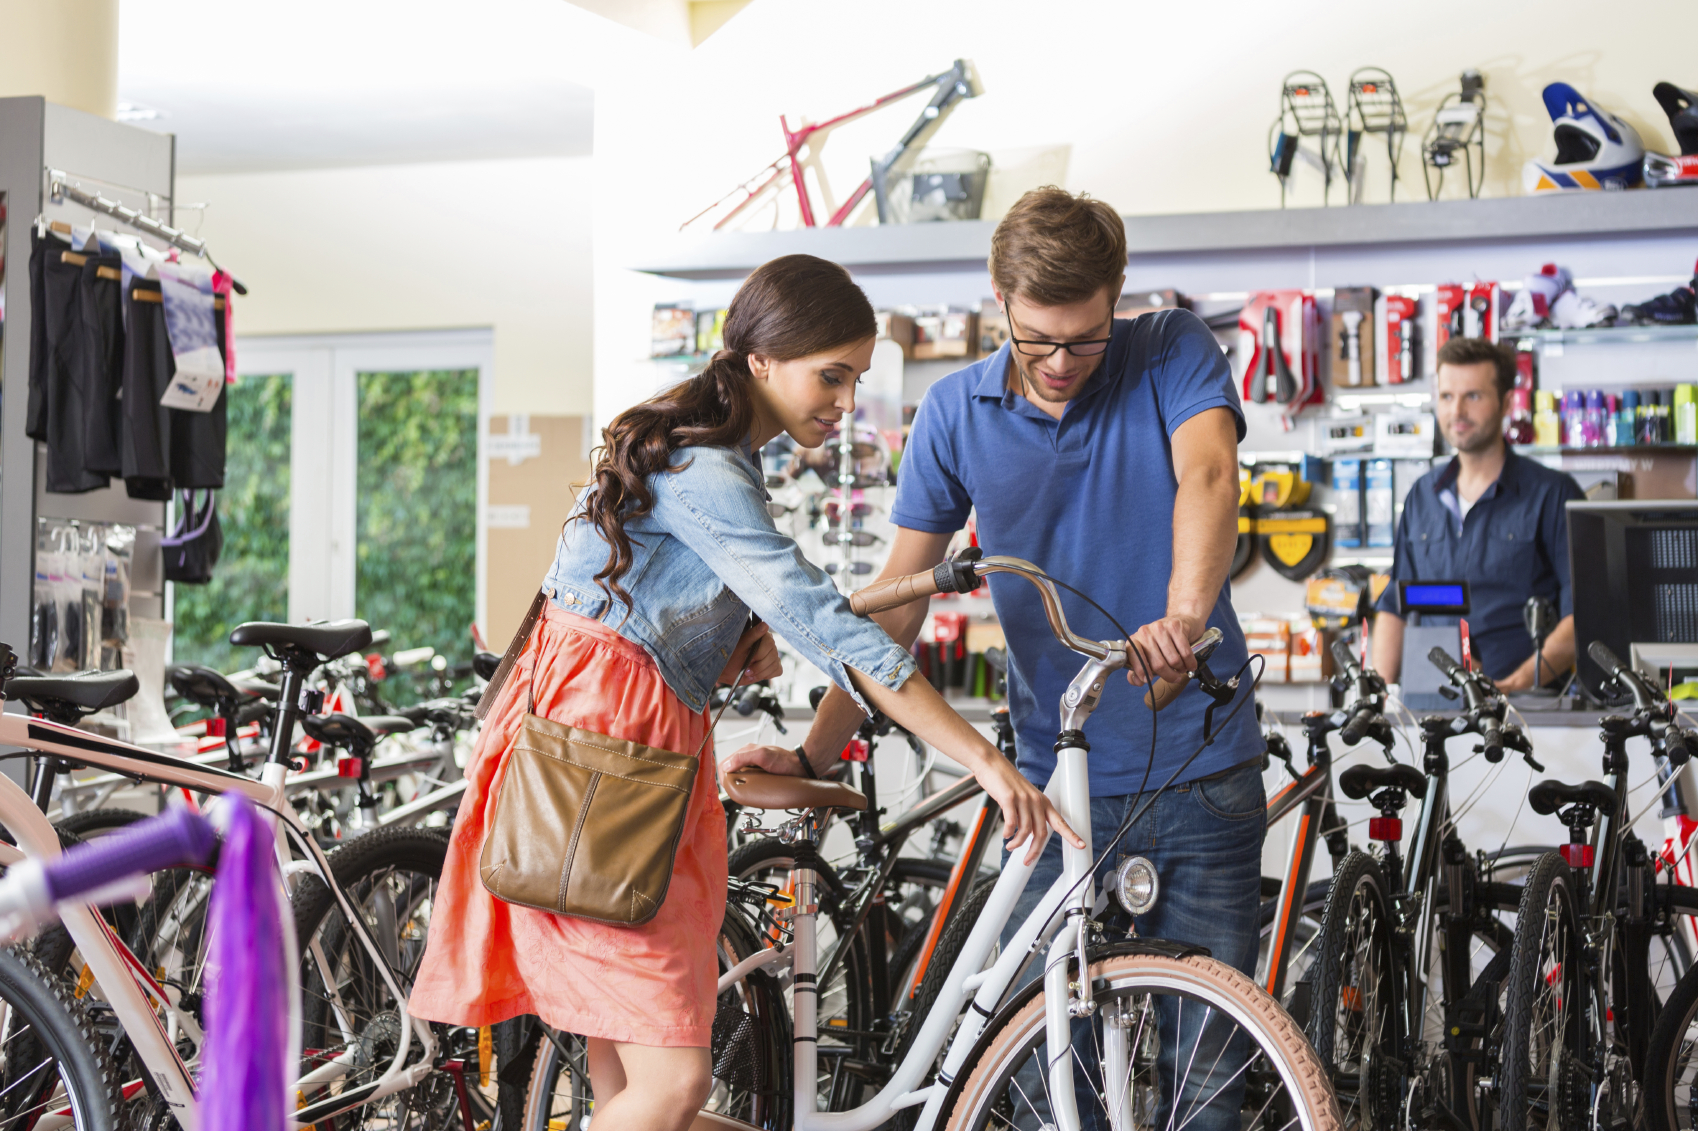 How Bike Shops Can Steer Their Way to Modern Retail Success - Vend ...